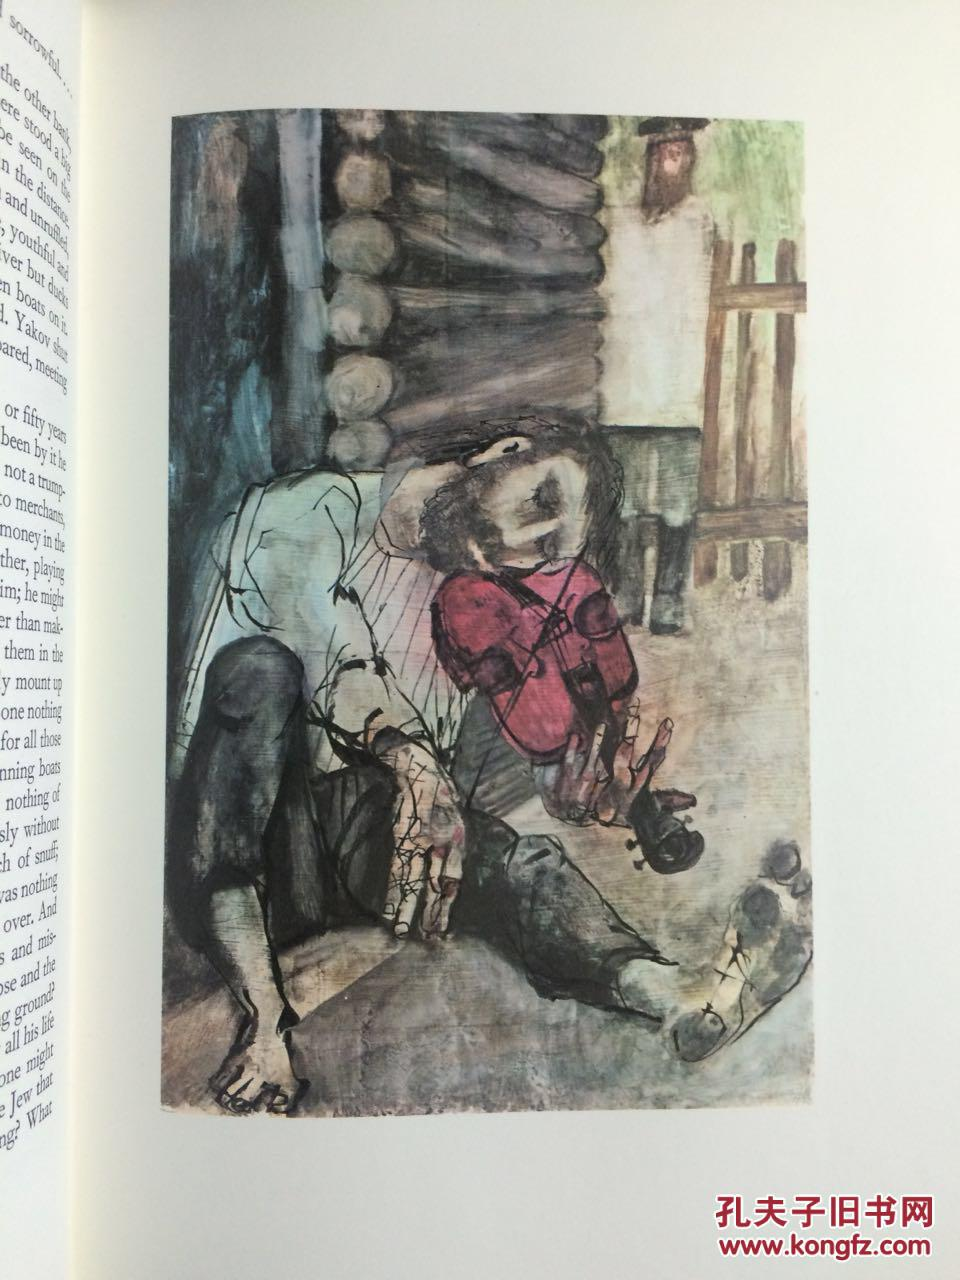 misery anton chekhov Misery, by anton chekhov free essays, term papers and book reports thousands of papers to select from all free.